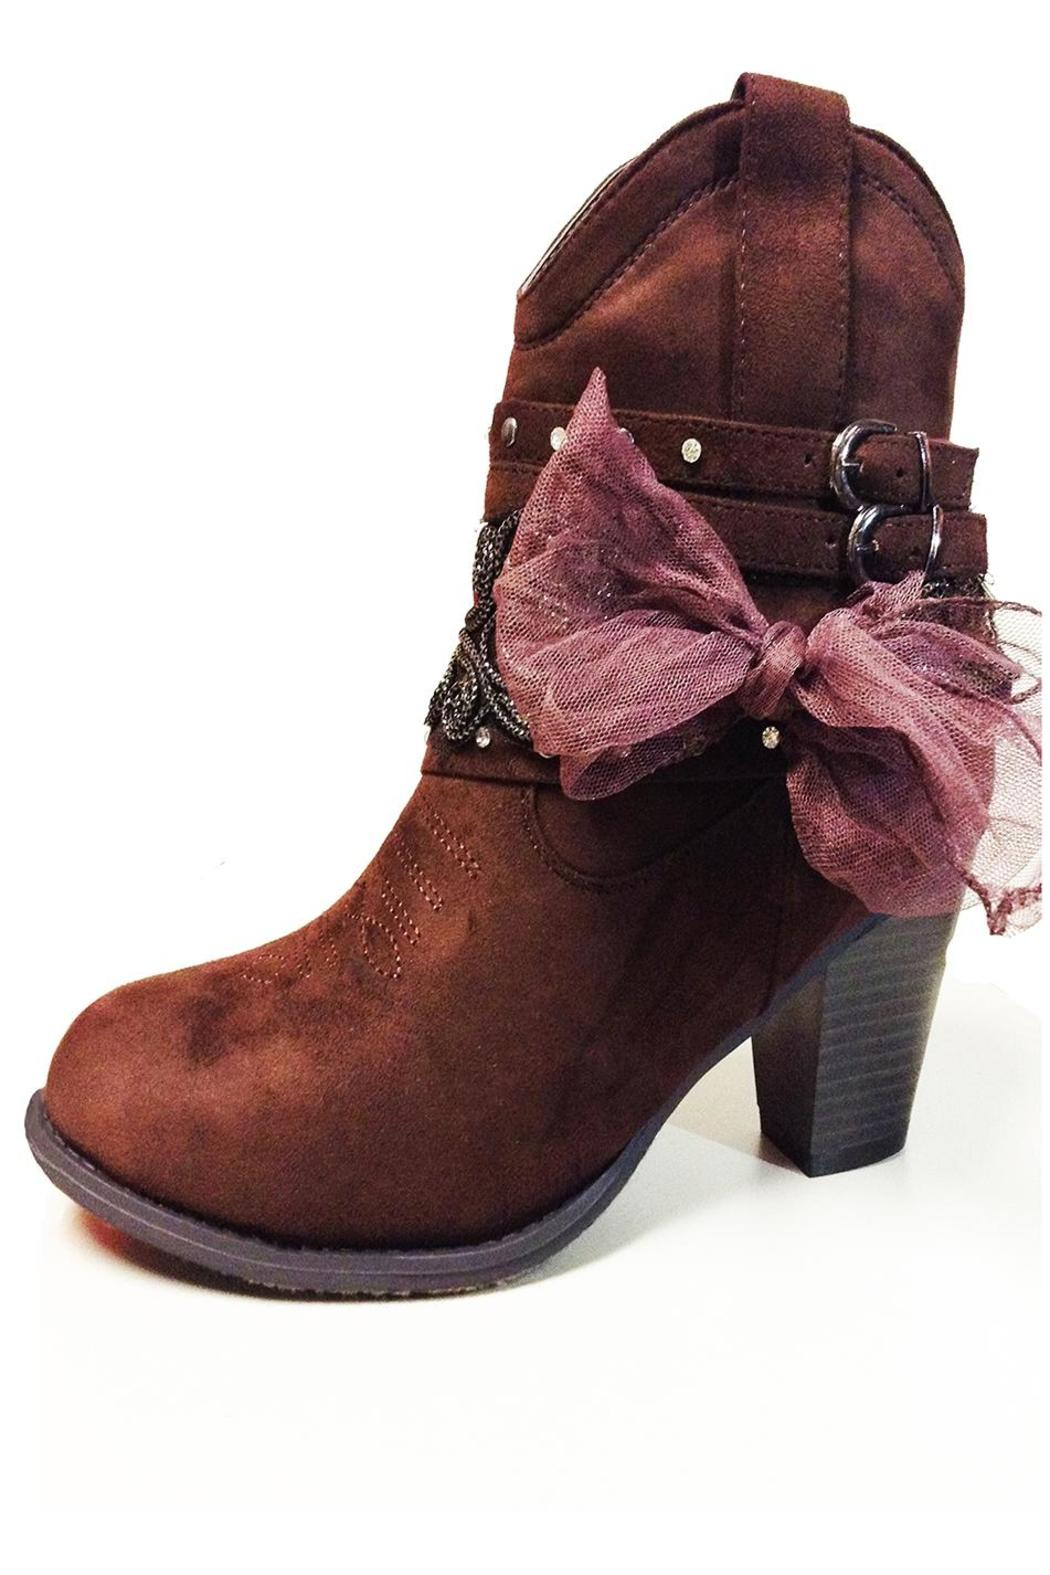 Lowcut Cowgirl Booties